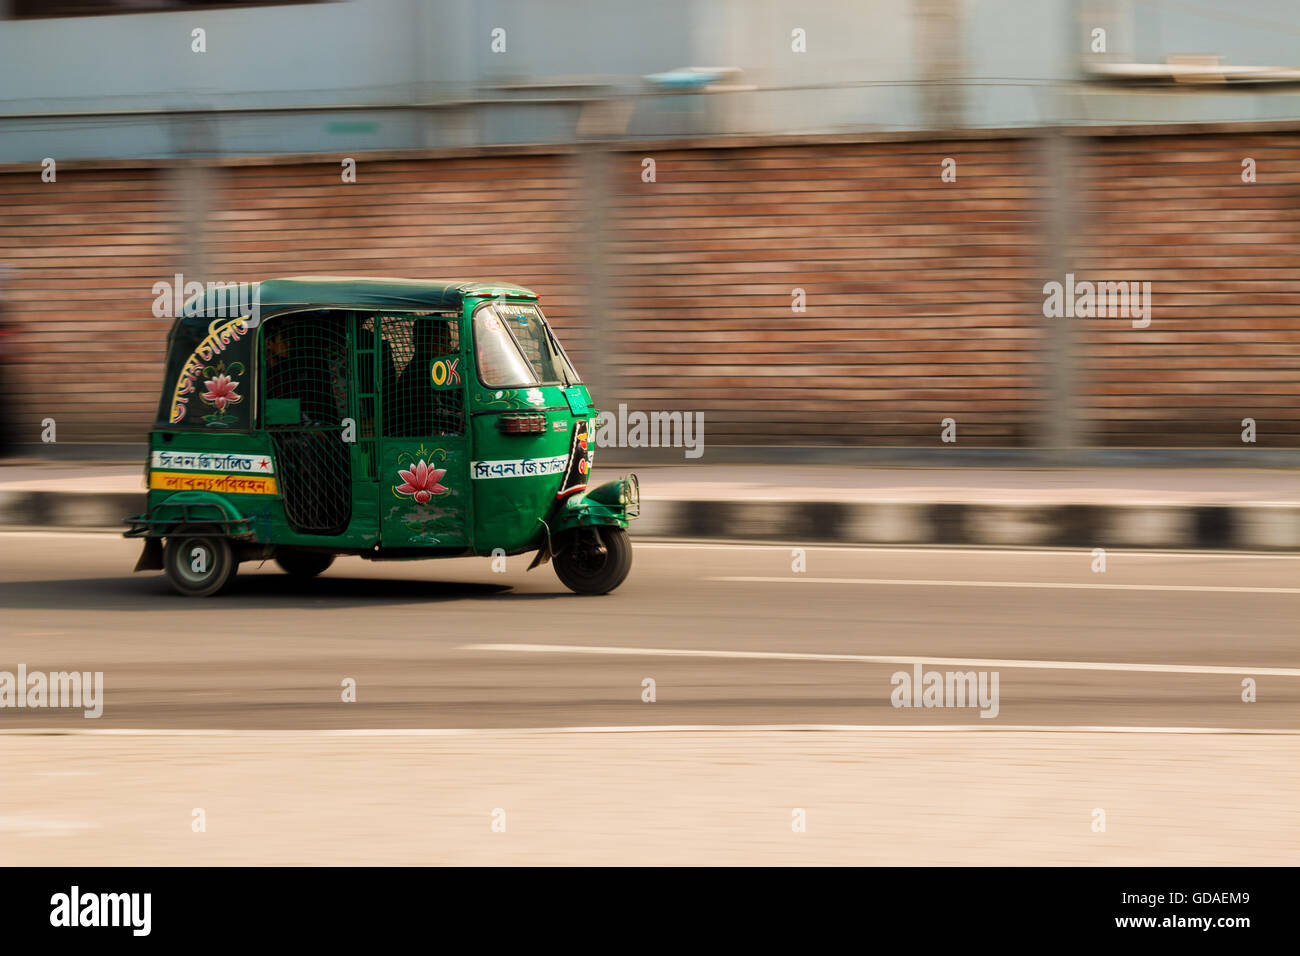 CNG taxi in Dhaka - Stock Image